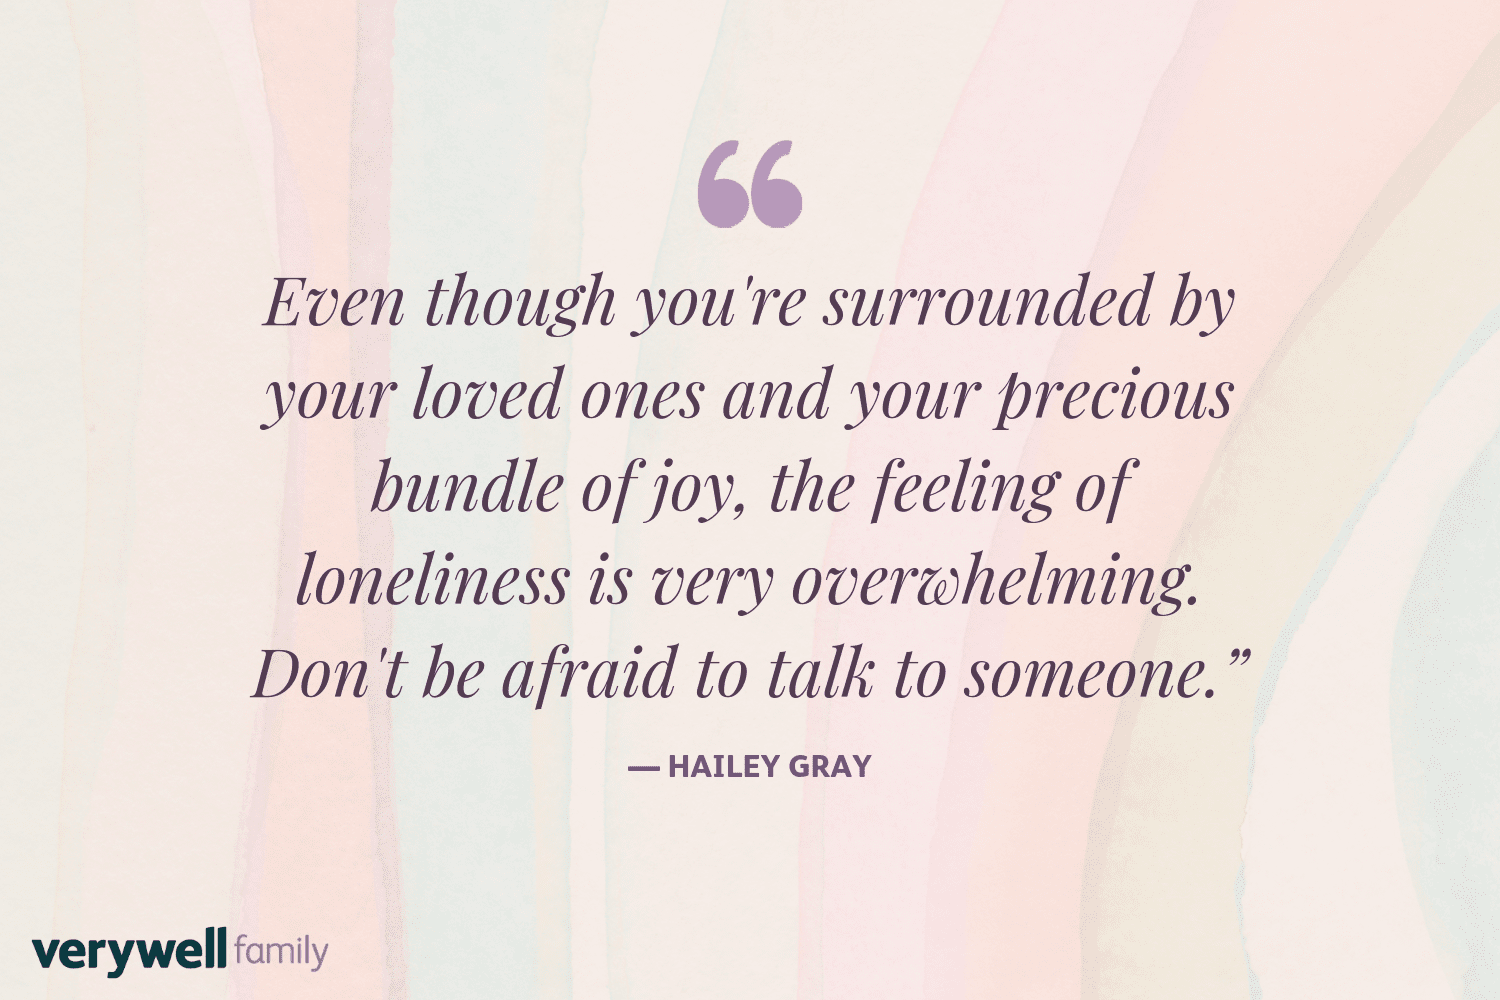 Verywell Family postpartum quote by Hailey Gray